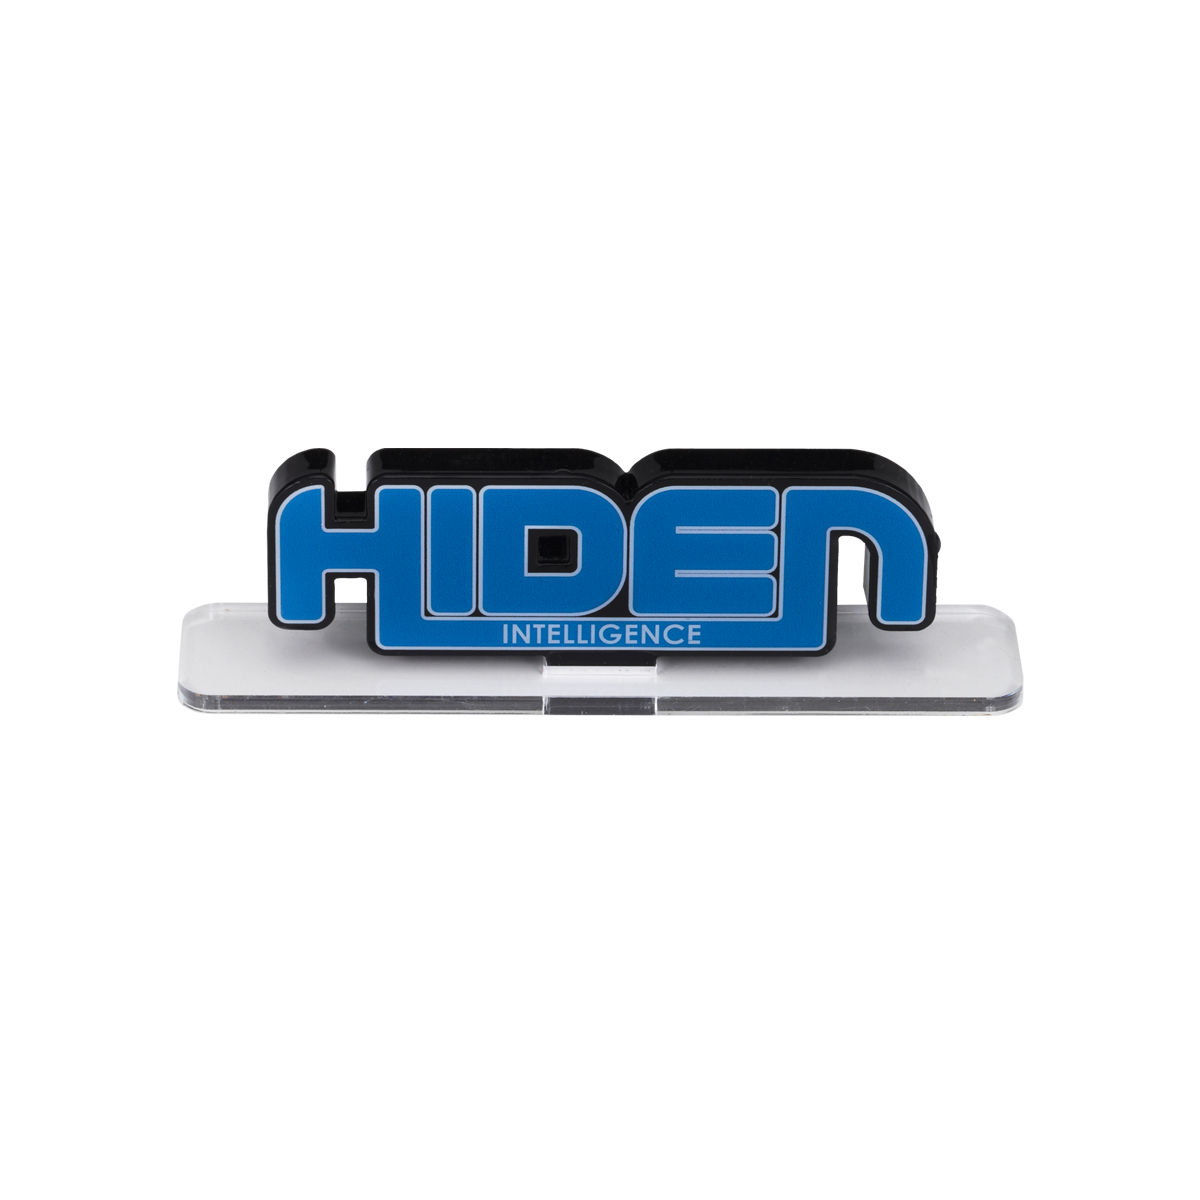 ACRYLIC LOGO DISPLAY EX 幪面超人零一 HIDEN INTELLIGENCE